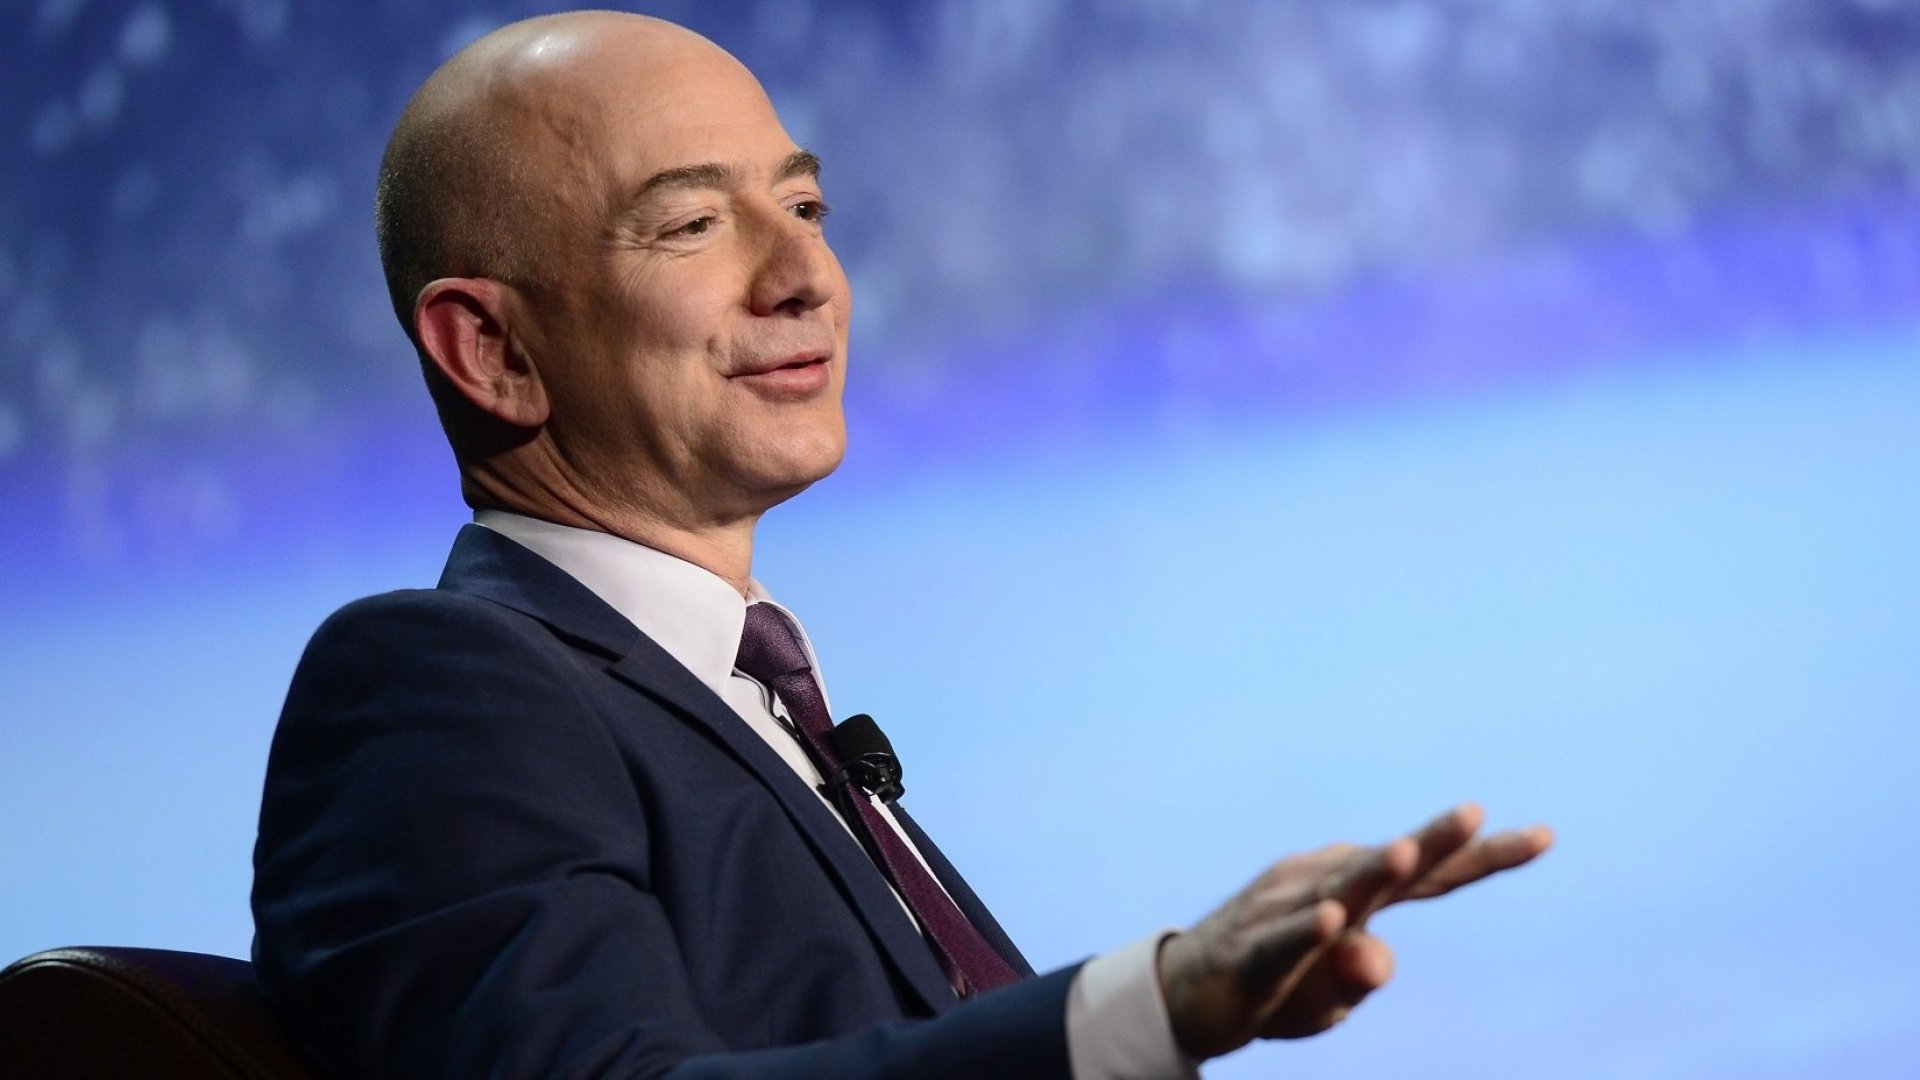 These 10 Words From Jeff Bezos Should Be Your New Mantra for a Healthier and More Productive Life